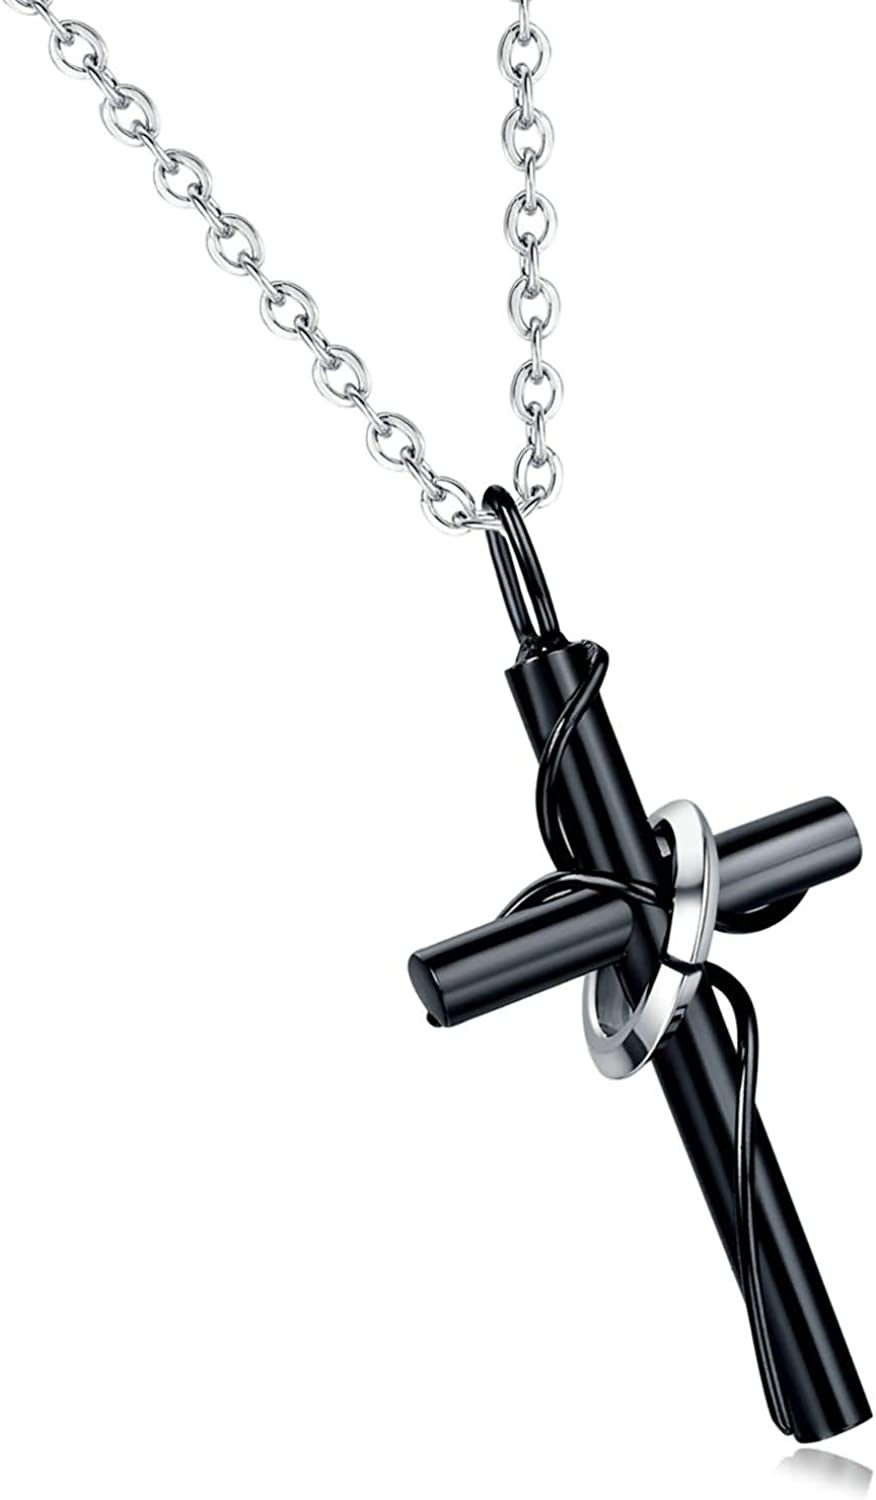 2pcs Silver Stainless Steel Cross Sword Charms Pendant Necklace Jewelry Making